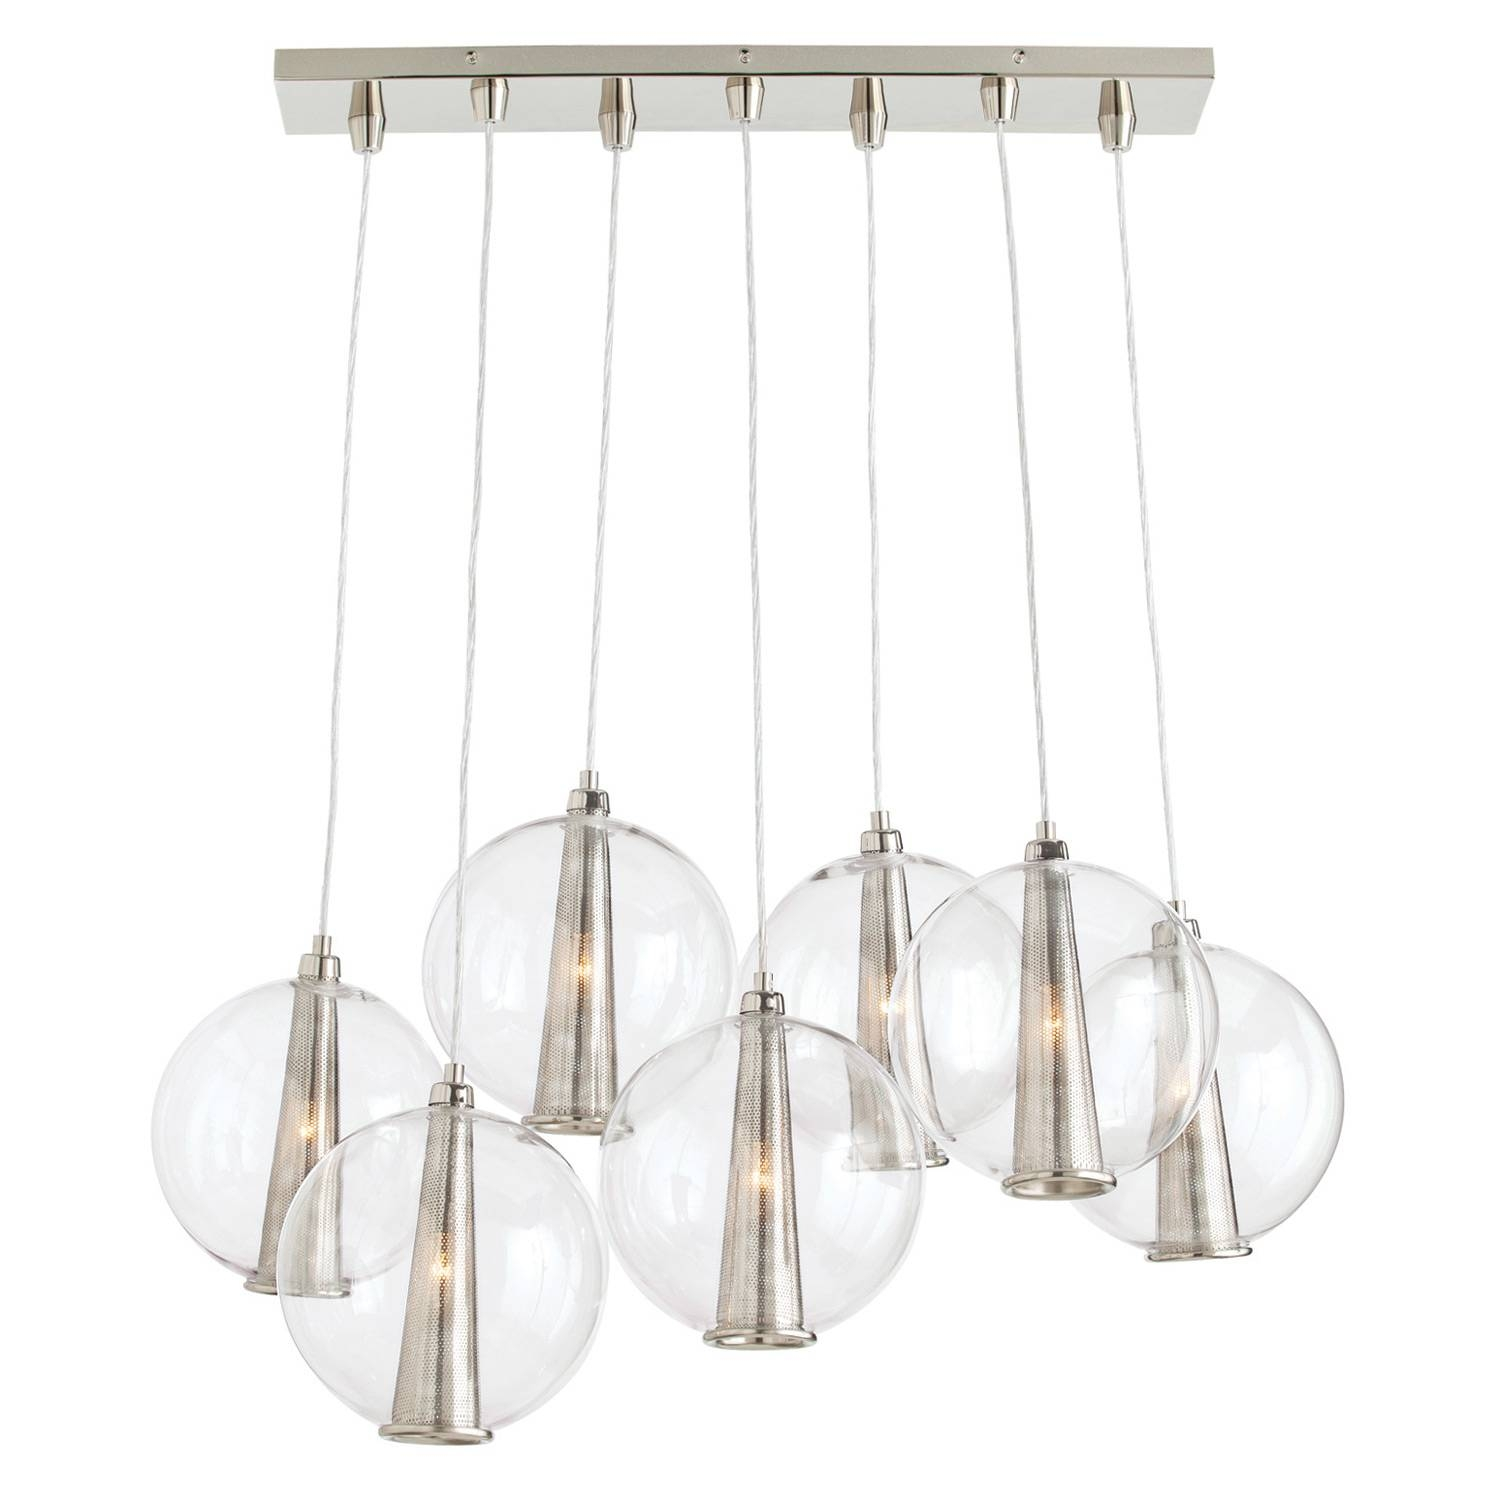 Laura Kirar For Arteriors Caviar Staggered Pendant with regard to Caviar Pendants (Image 14 of 15)